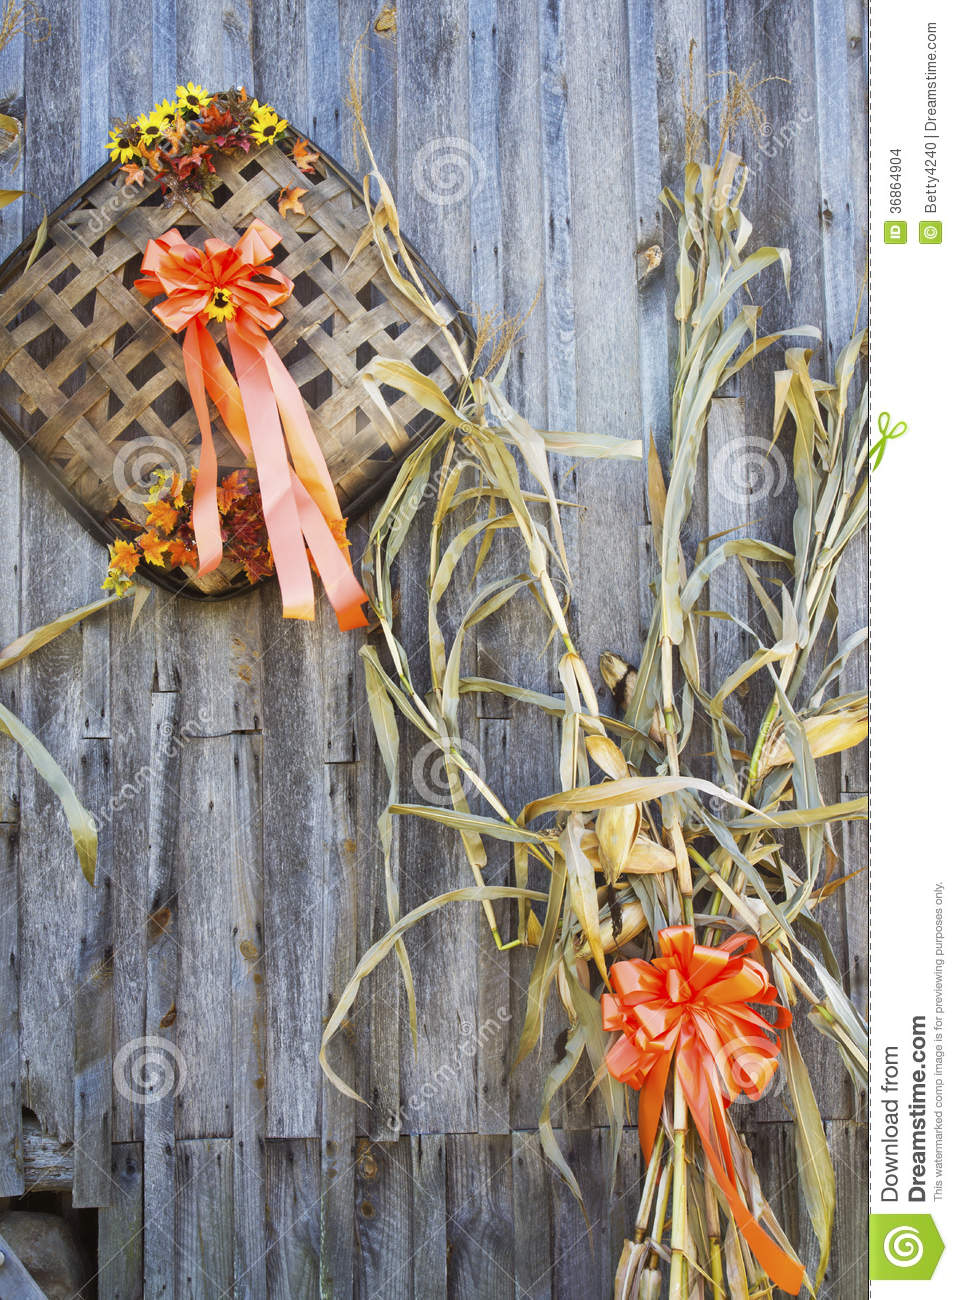 Fall Decorations On The Side Of A Wooden Barn Stock Photo